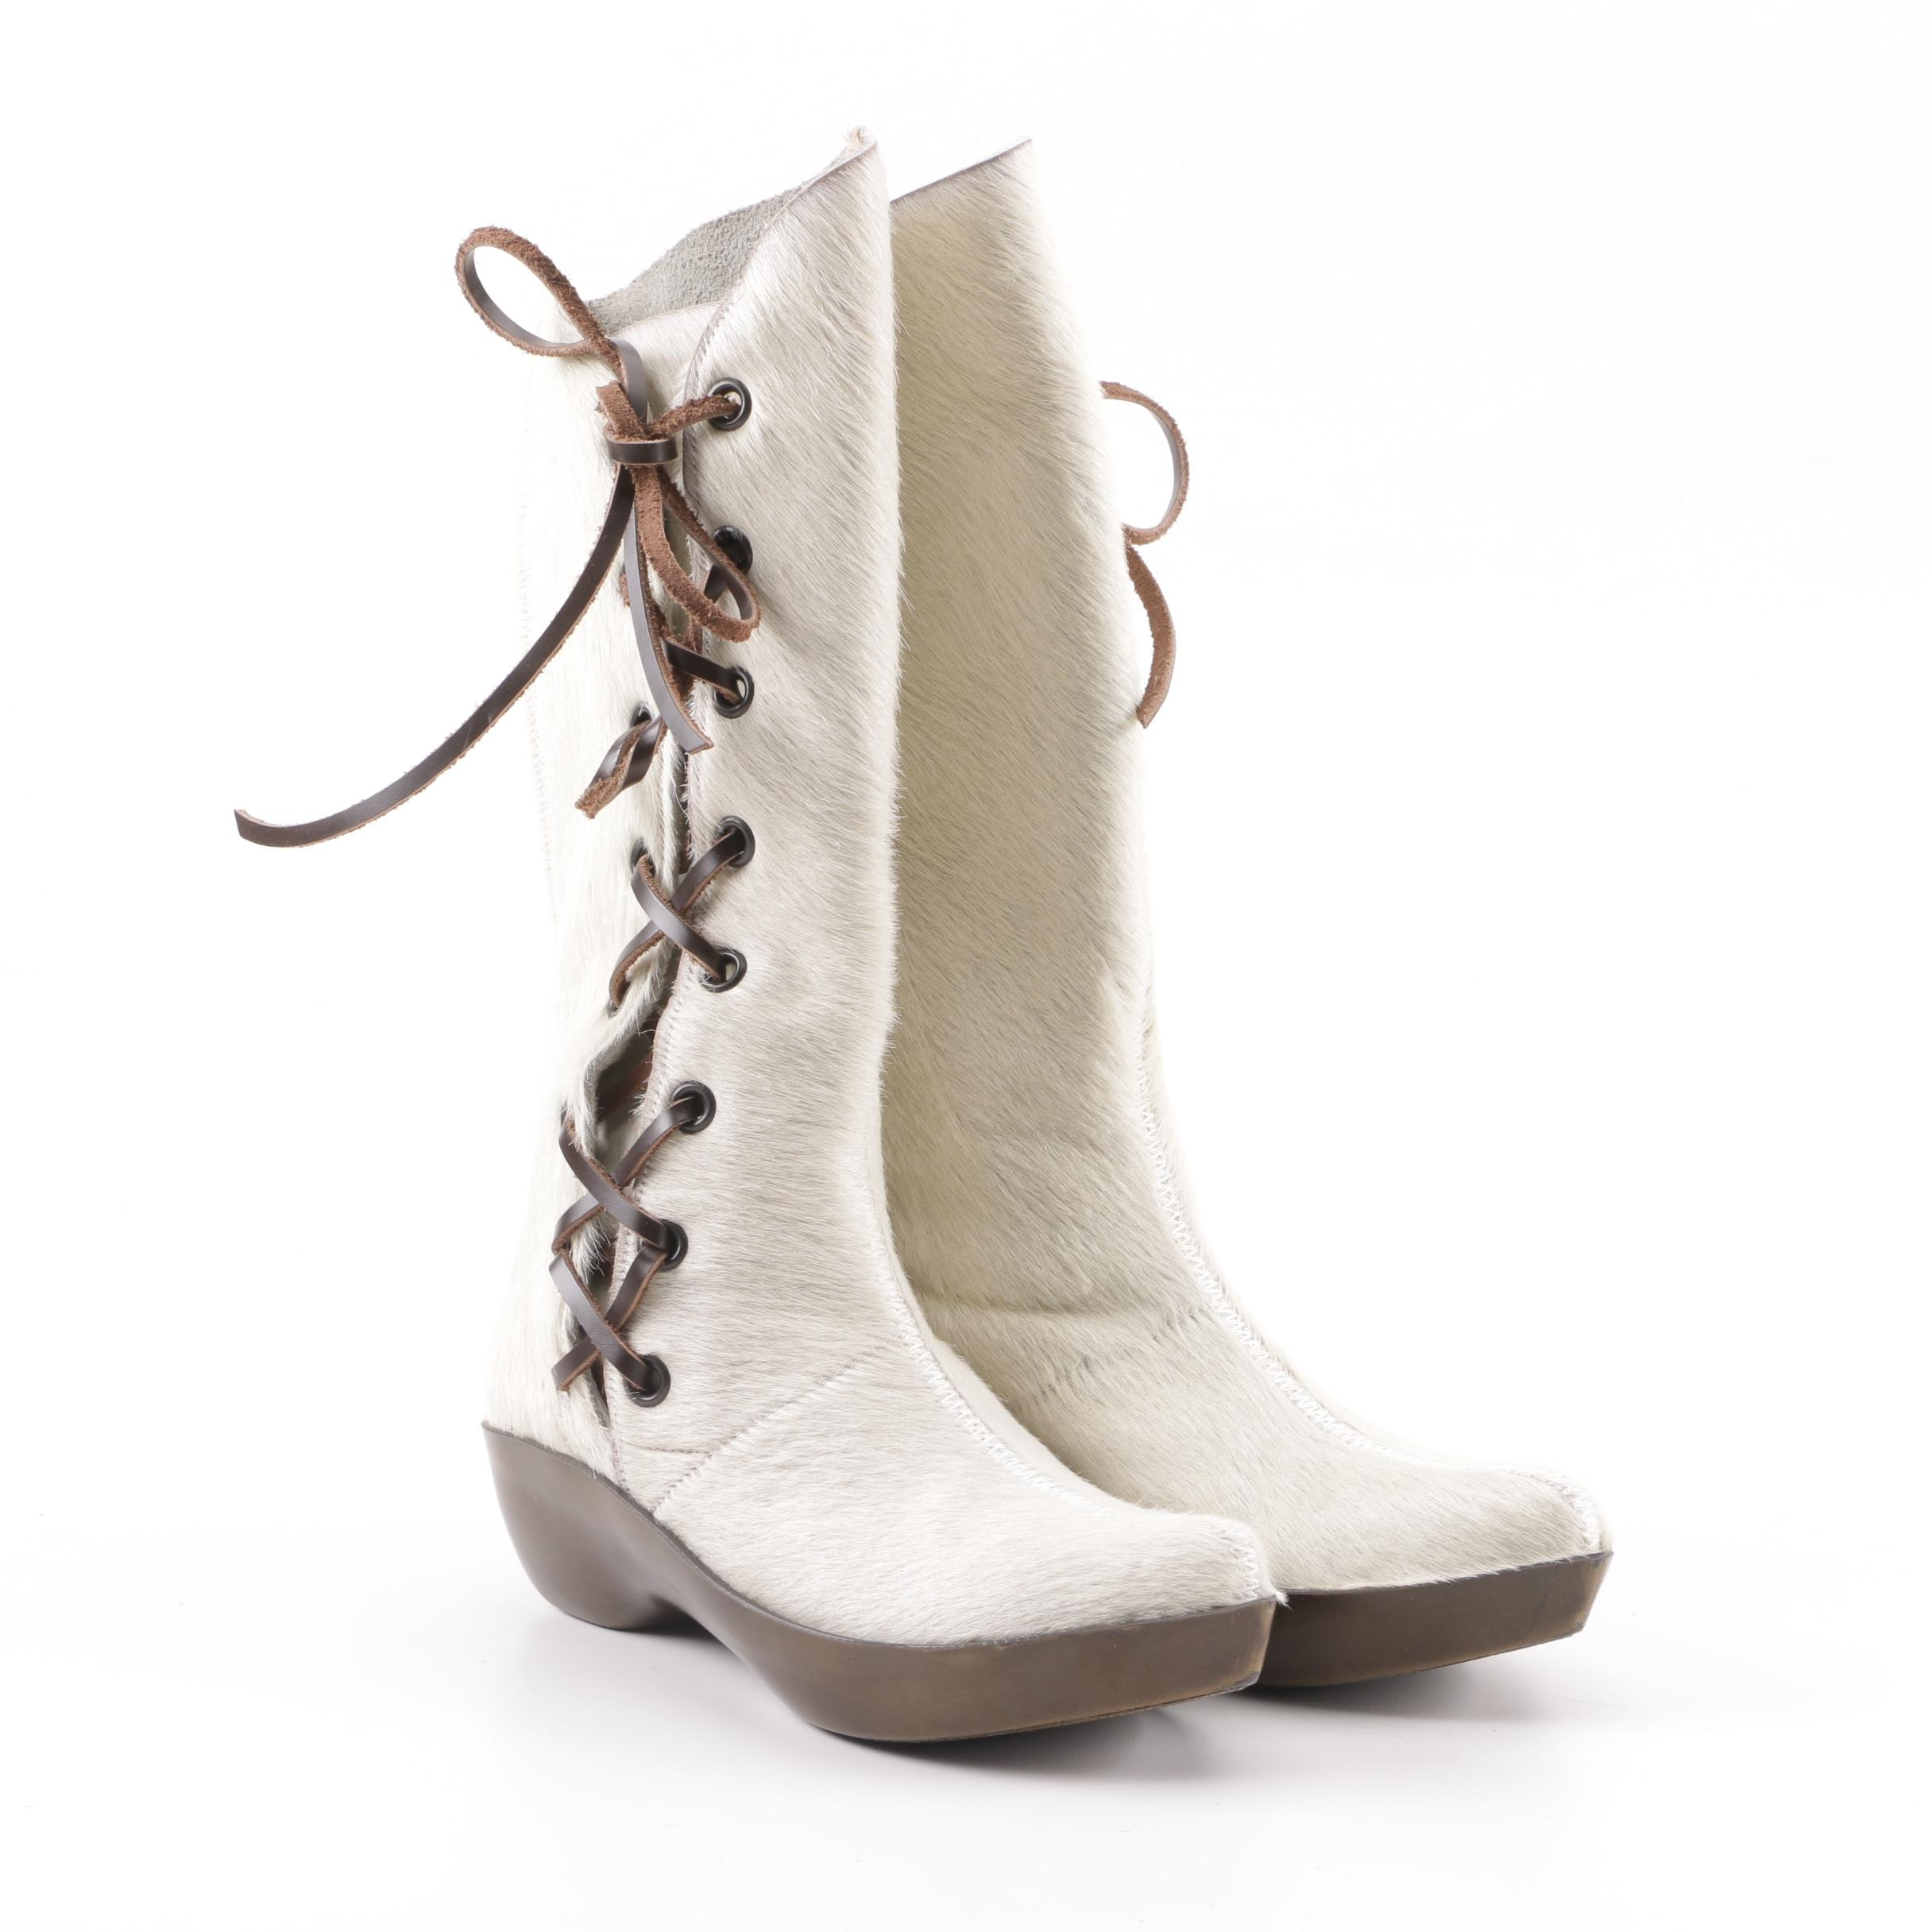 Robert Clergerie Paris White Pony Hair Boots, Made in France